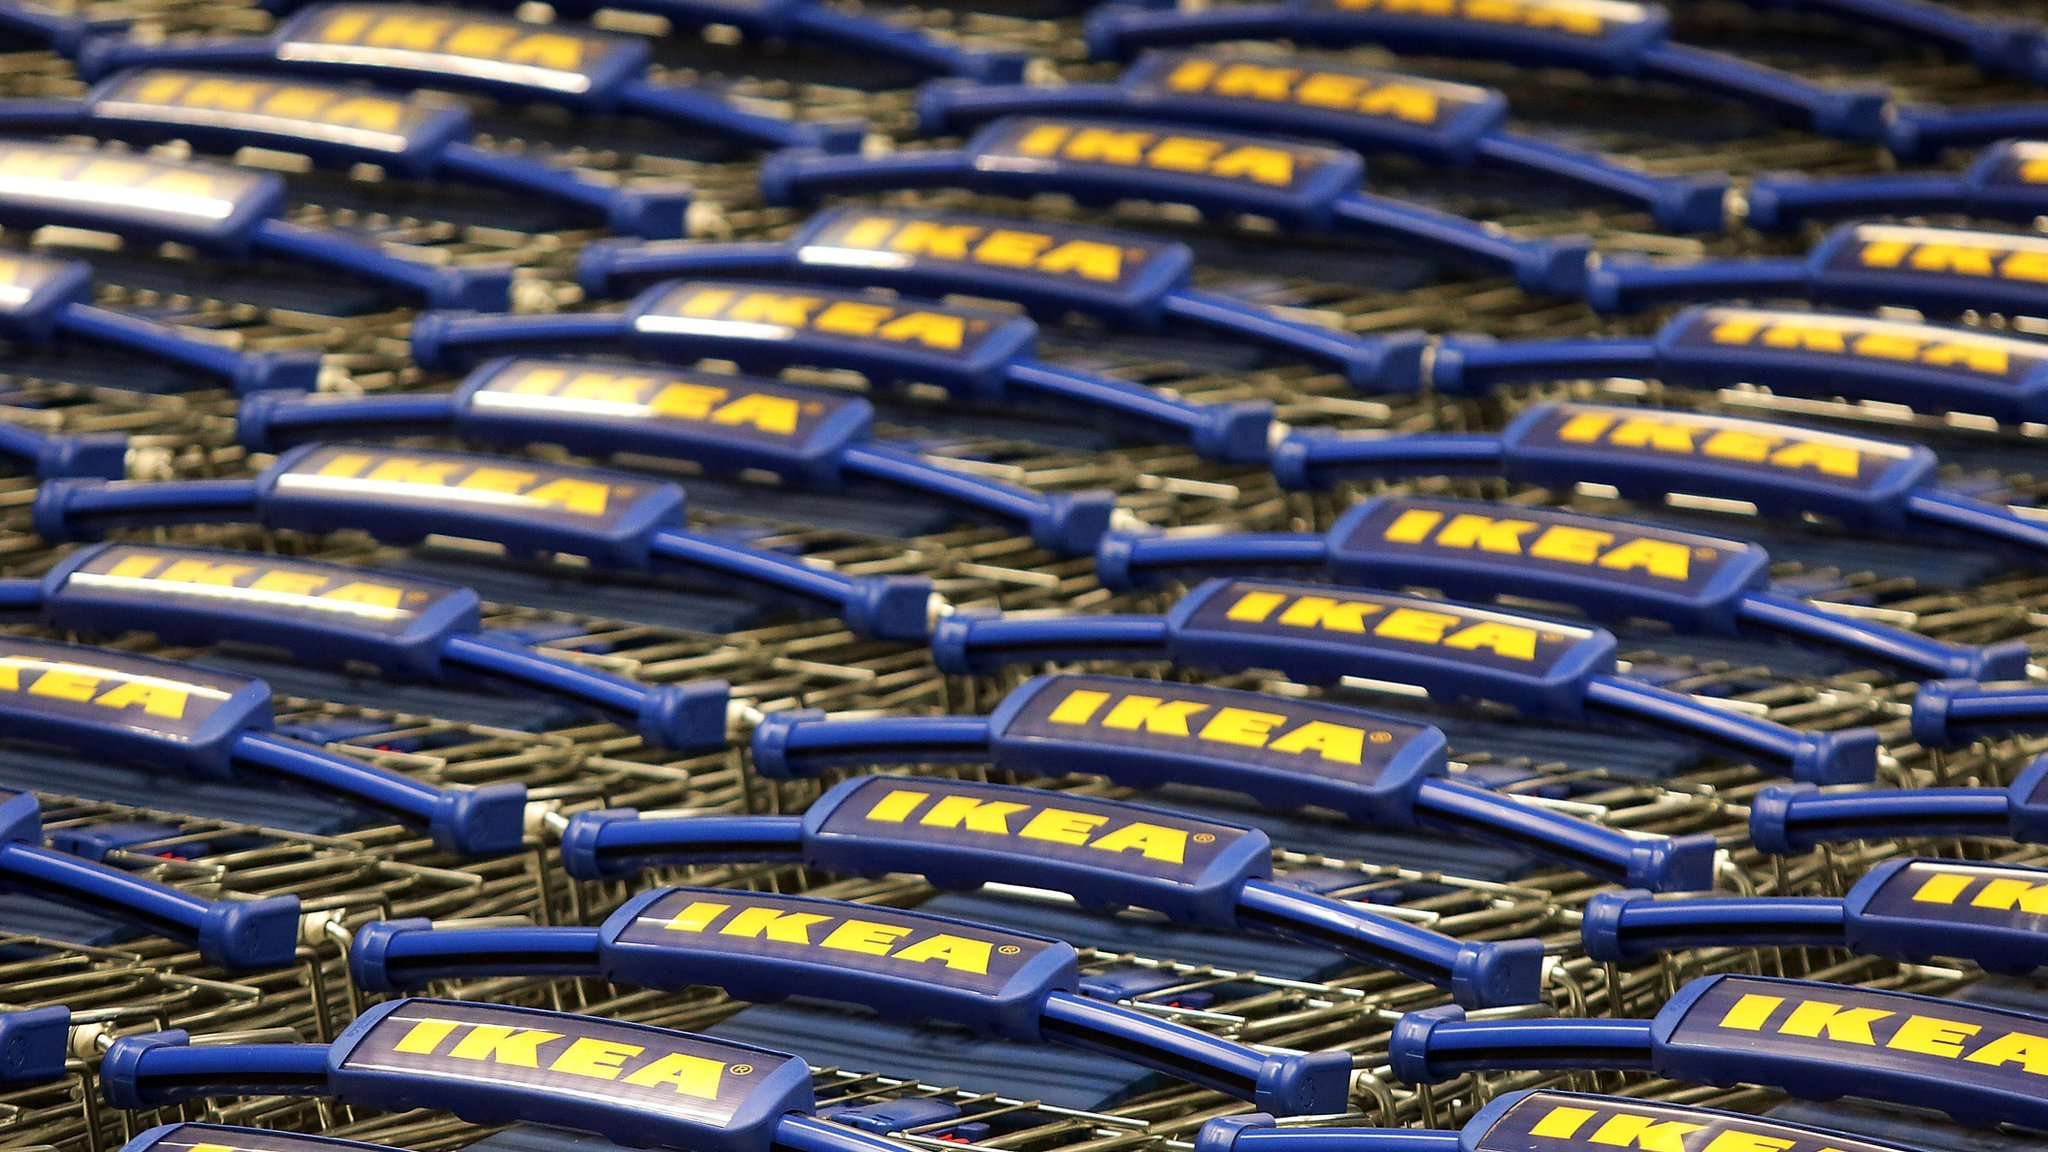 Ikea recall after US child deaths